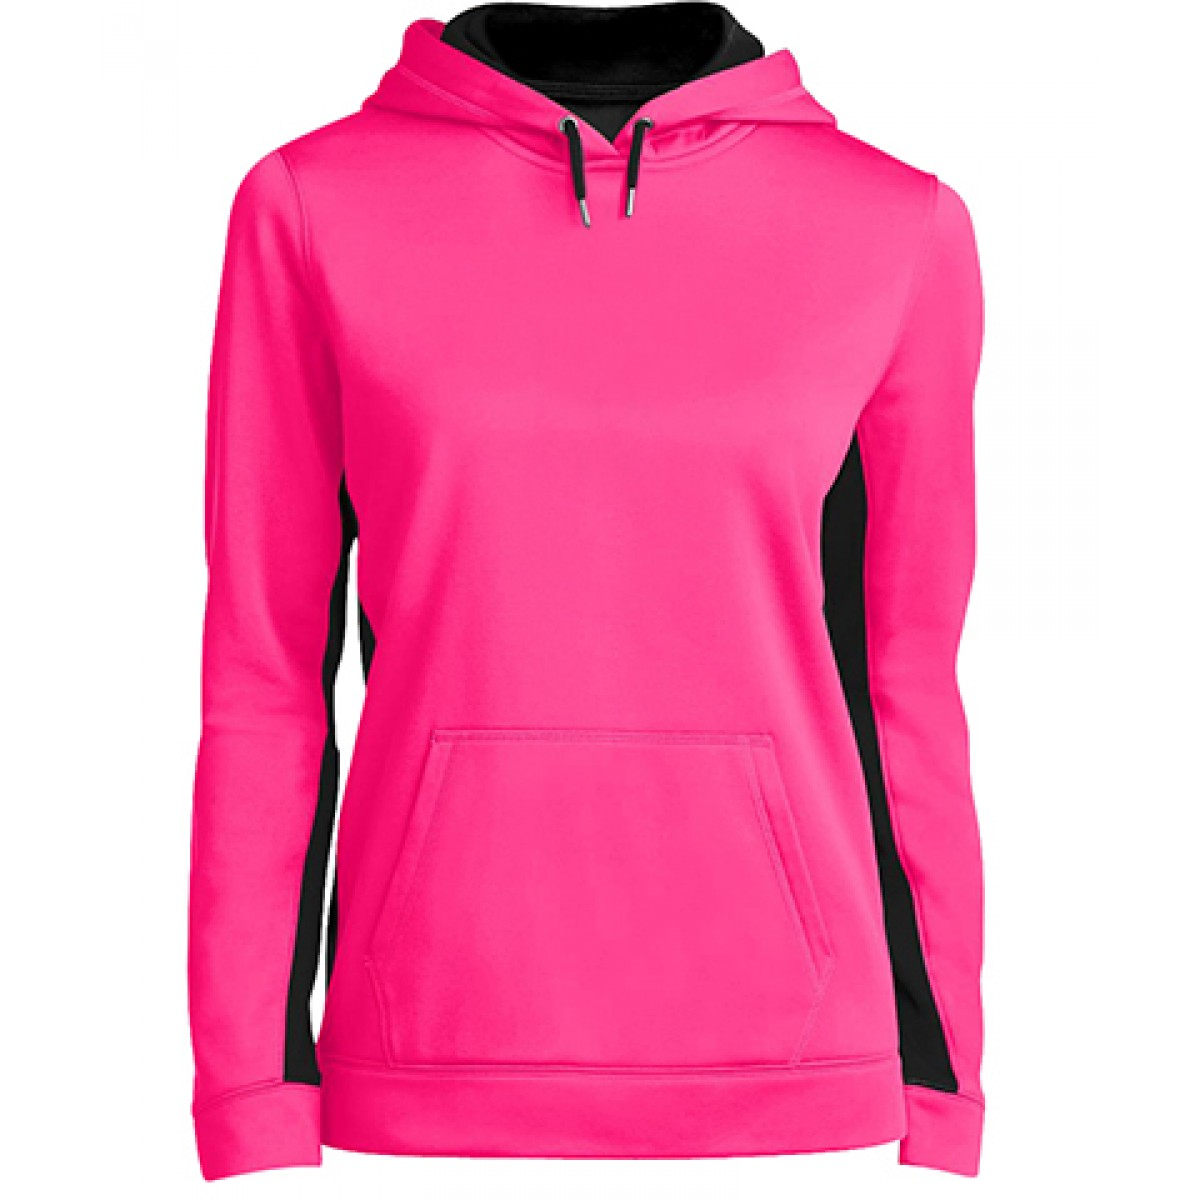 Ladies Colorblock Hooded Pullover-Neon Pink Black-3XL